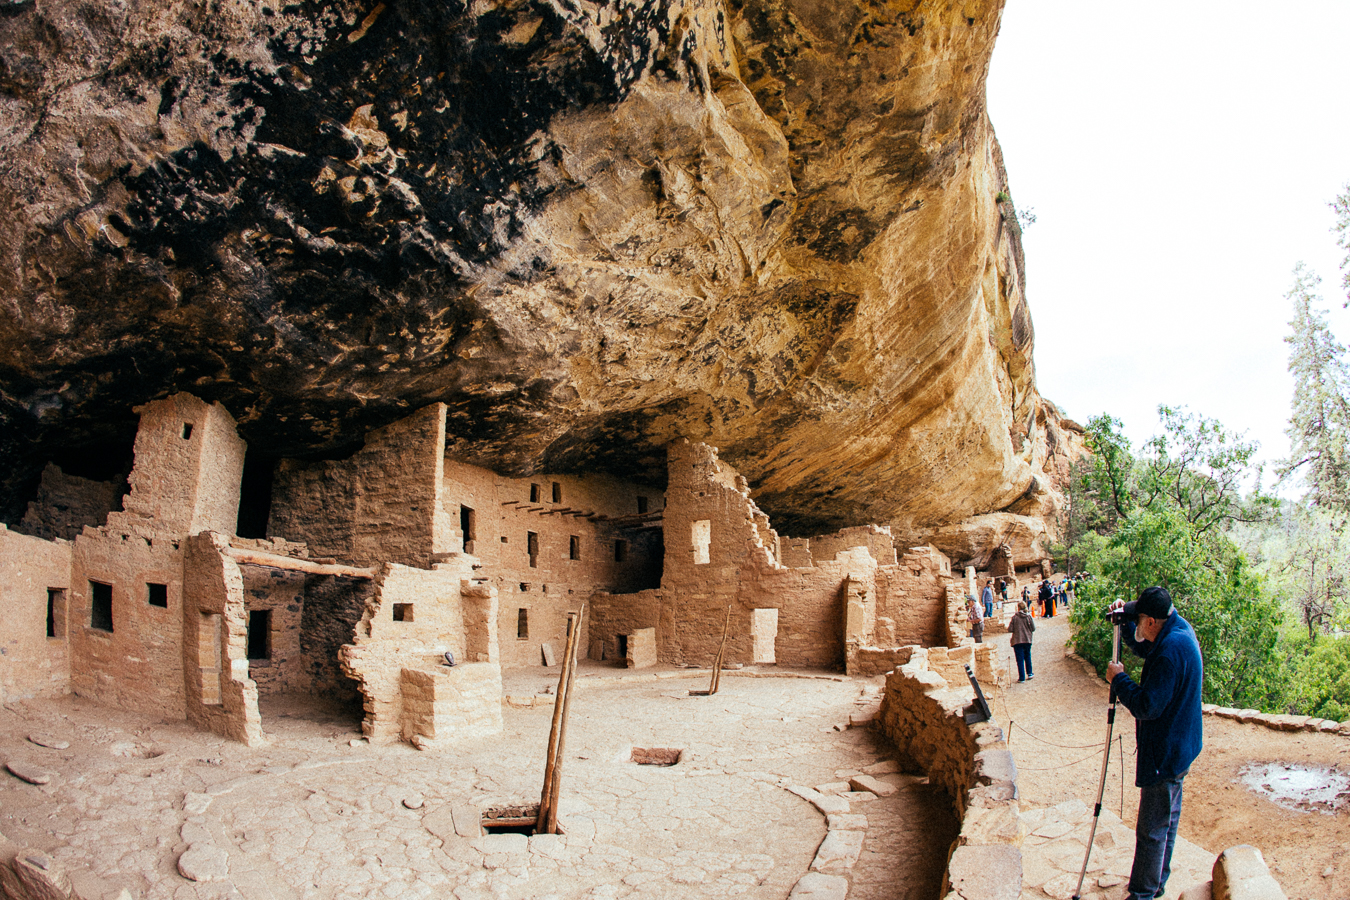 The Cliff Dwellings are a genius design. ...except for if there was an earthquake!